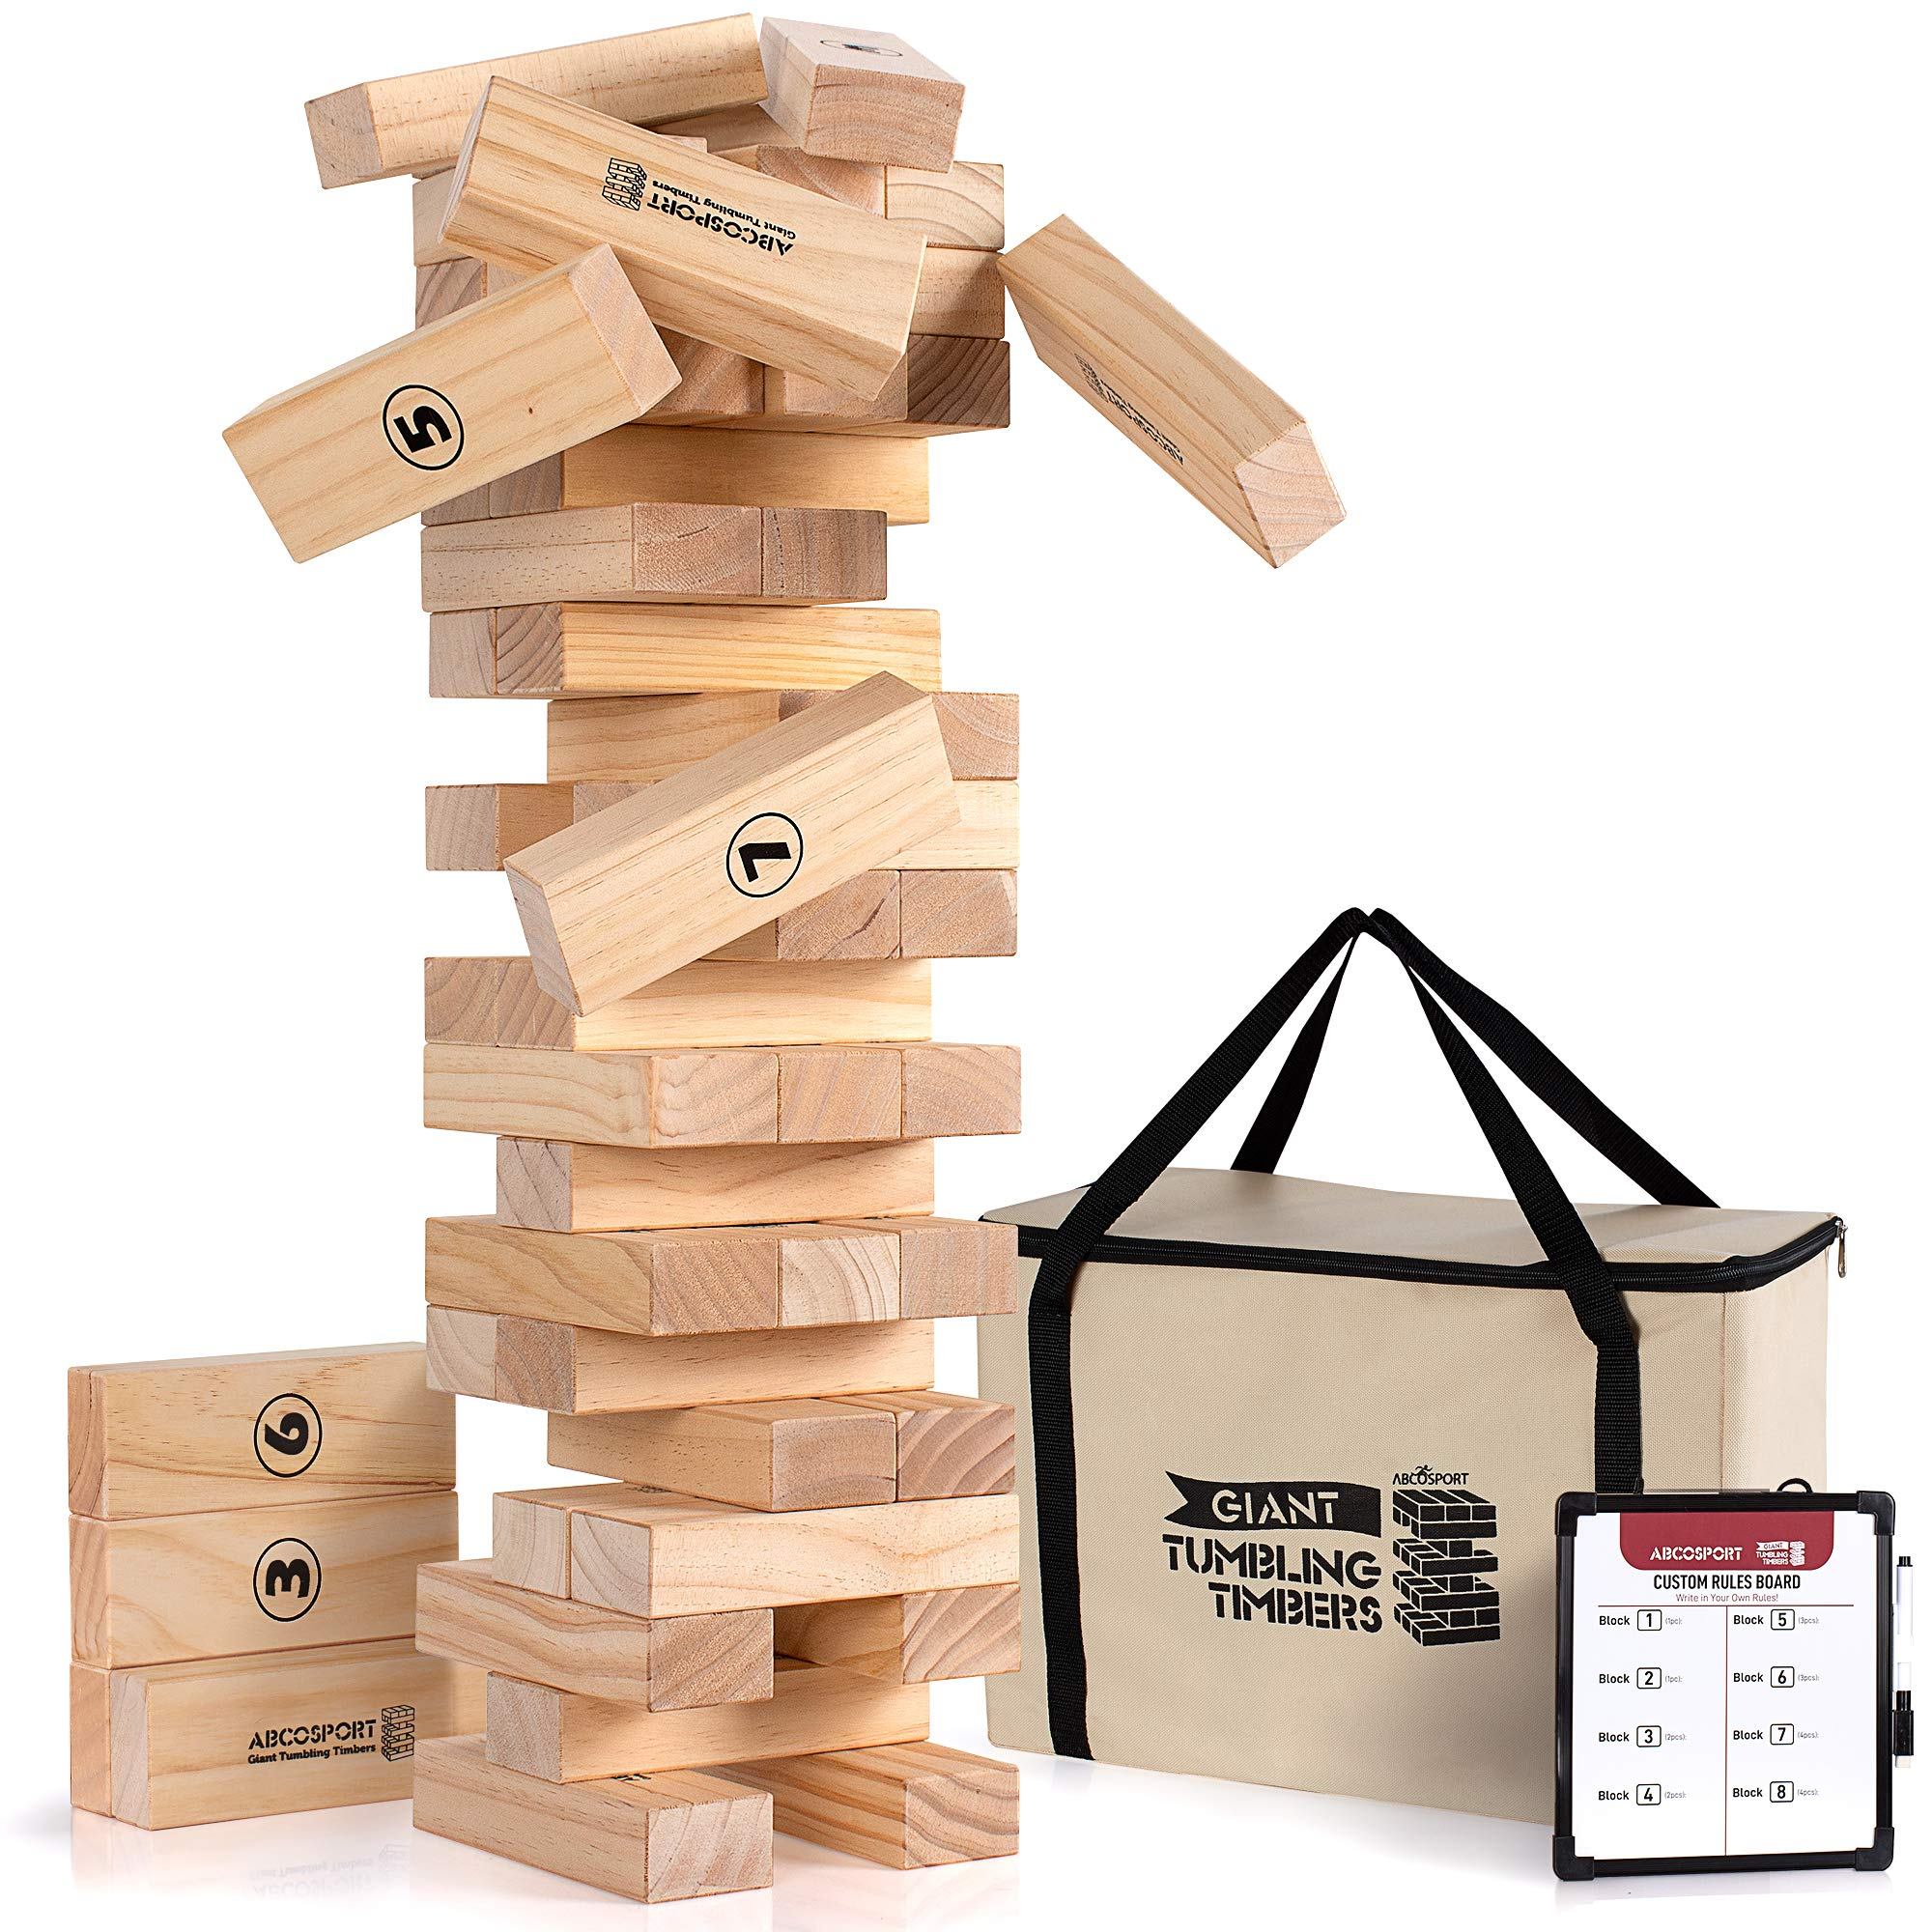 Giant Tumbling Timbers Tower Game - 56 Pieces Jumbo Wooden Blocks - Floor, Outdoor, Backyard and Lawn Games for Kids and Adults - Quality Pine Wood - Rounded Edge Blocks - Includes Carry Bag and Score by Abco Tech